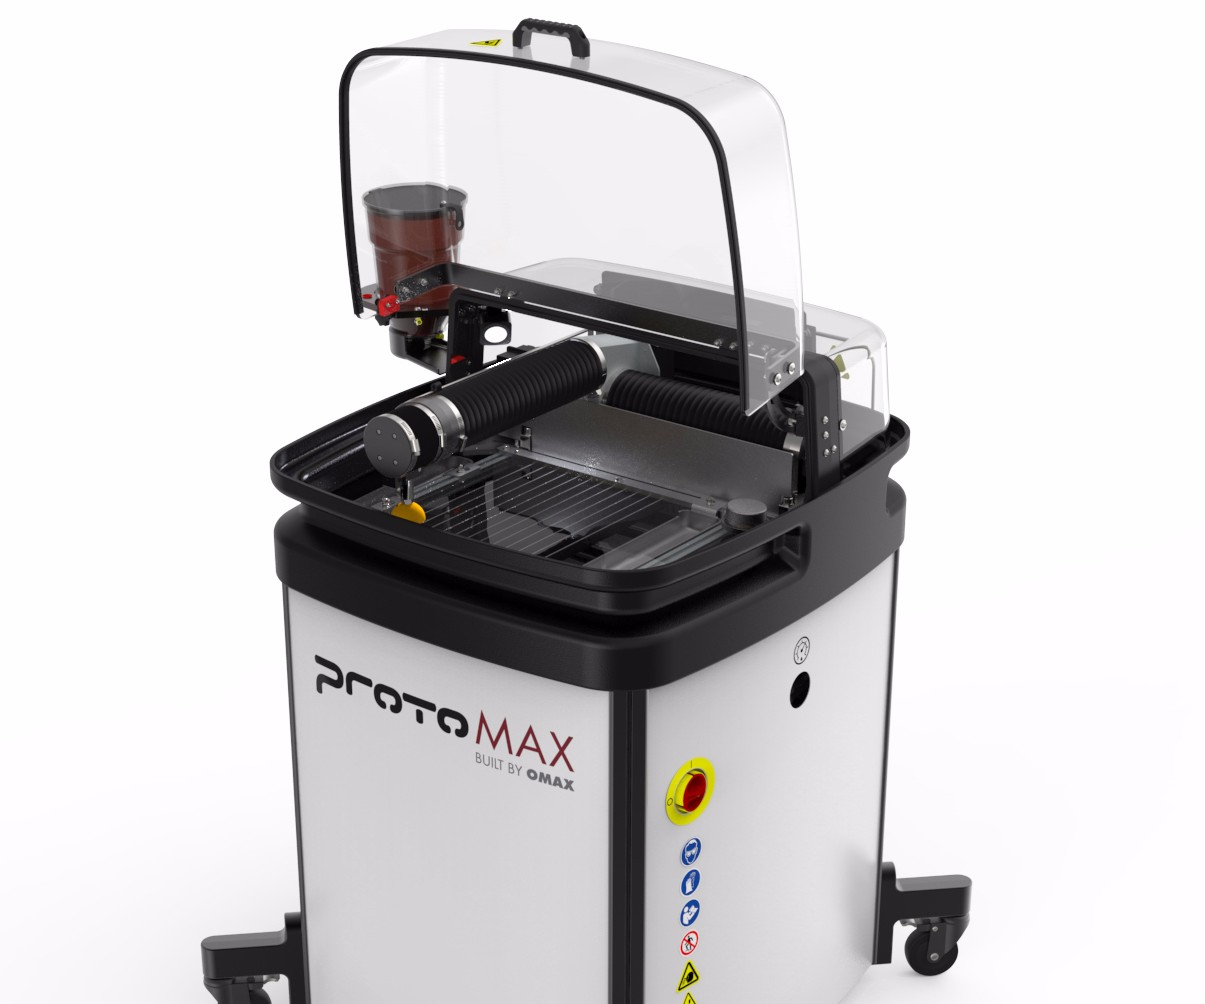 OMAX ProtoMAX compact waterjet cutting machine.